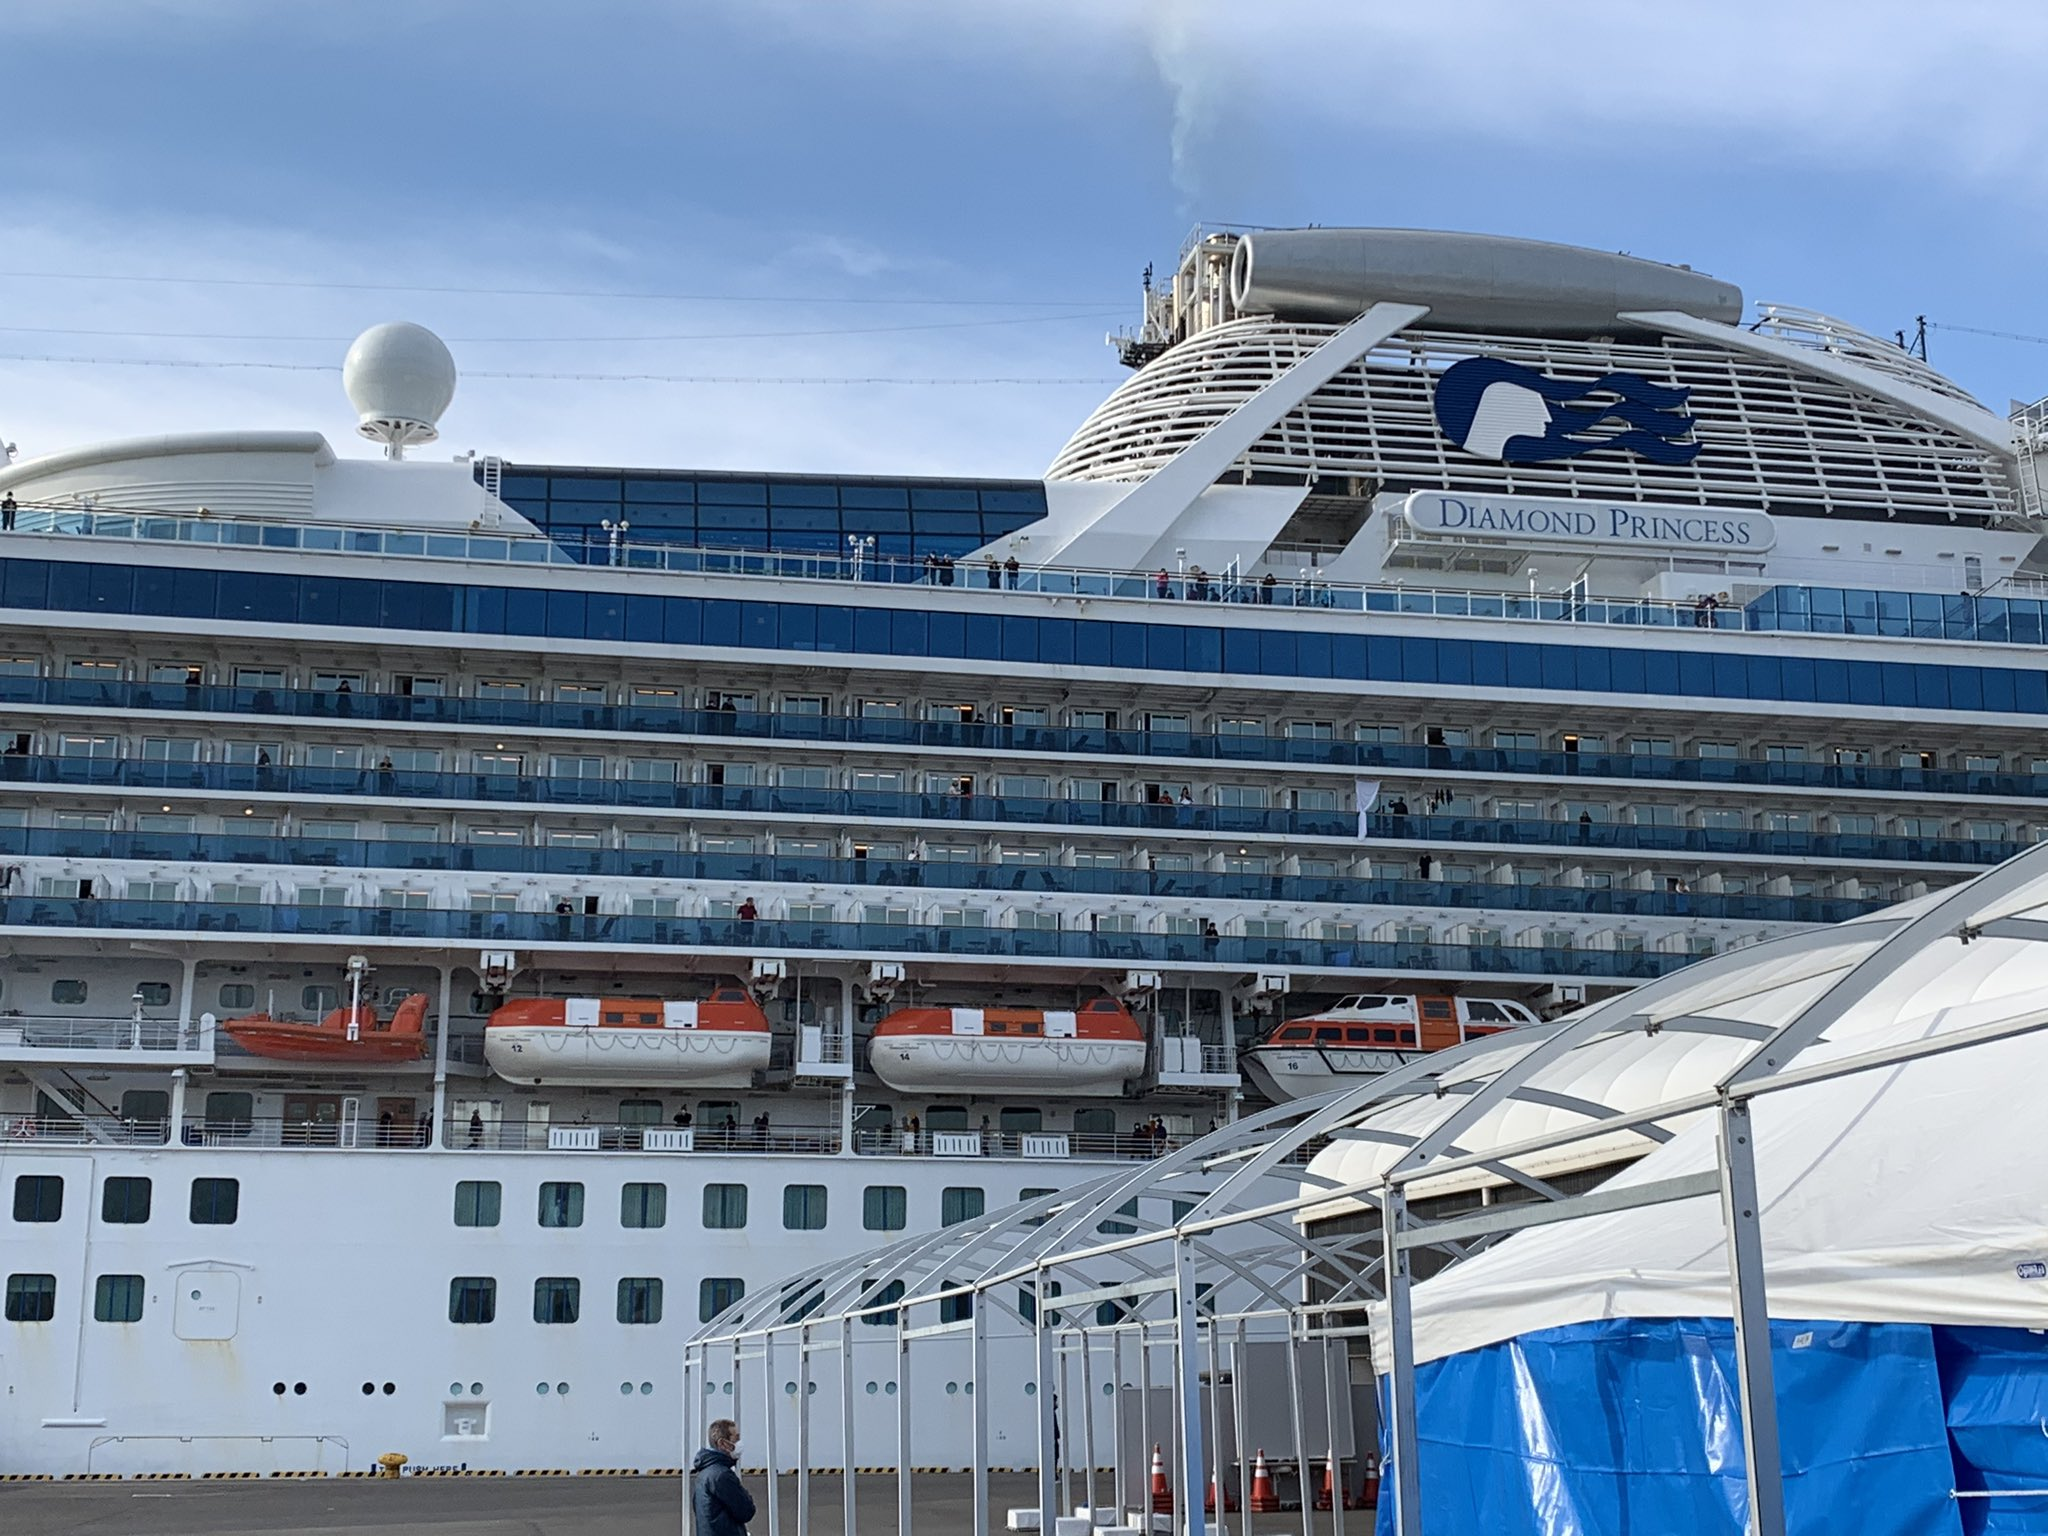 Japan Delivers 2,000 Iphones To Passengers On The 'diamond Princess' Cruise To Monitor Coronavirus Progress